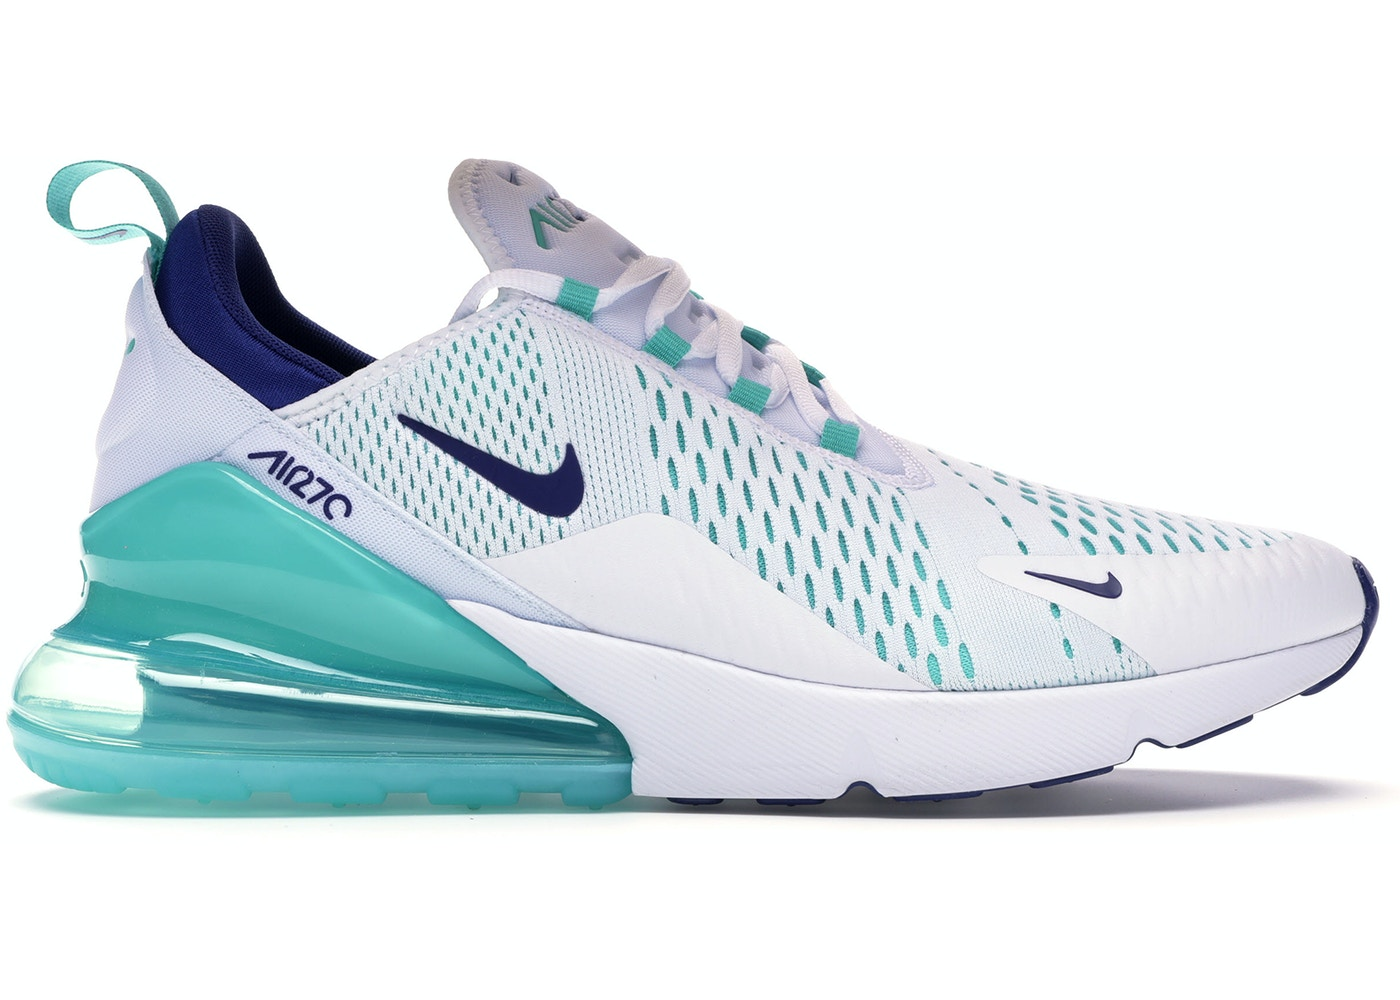 Nike Air Max 270 White Hyper Jade Deep Royal Blue Ci2451 100